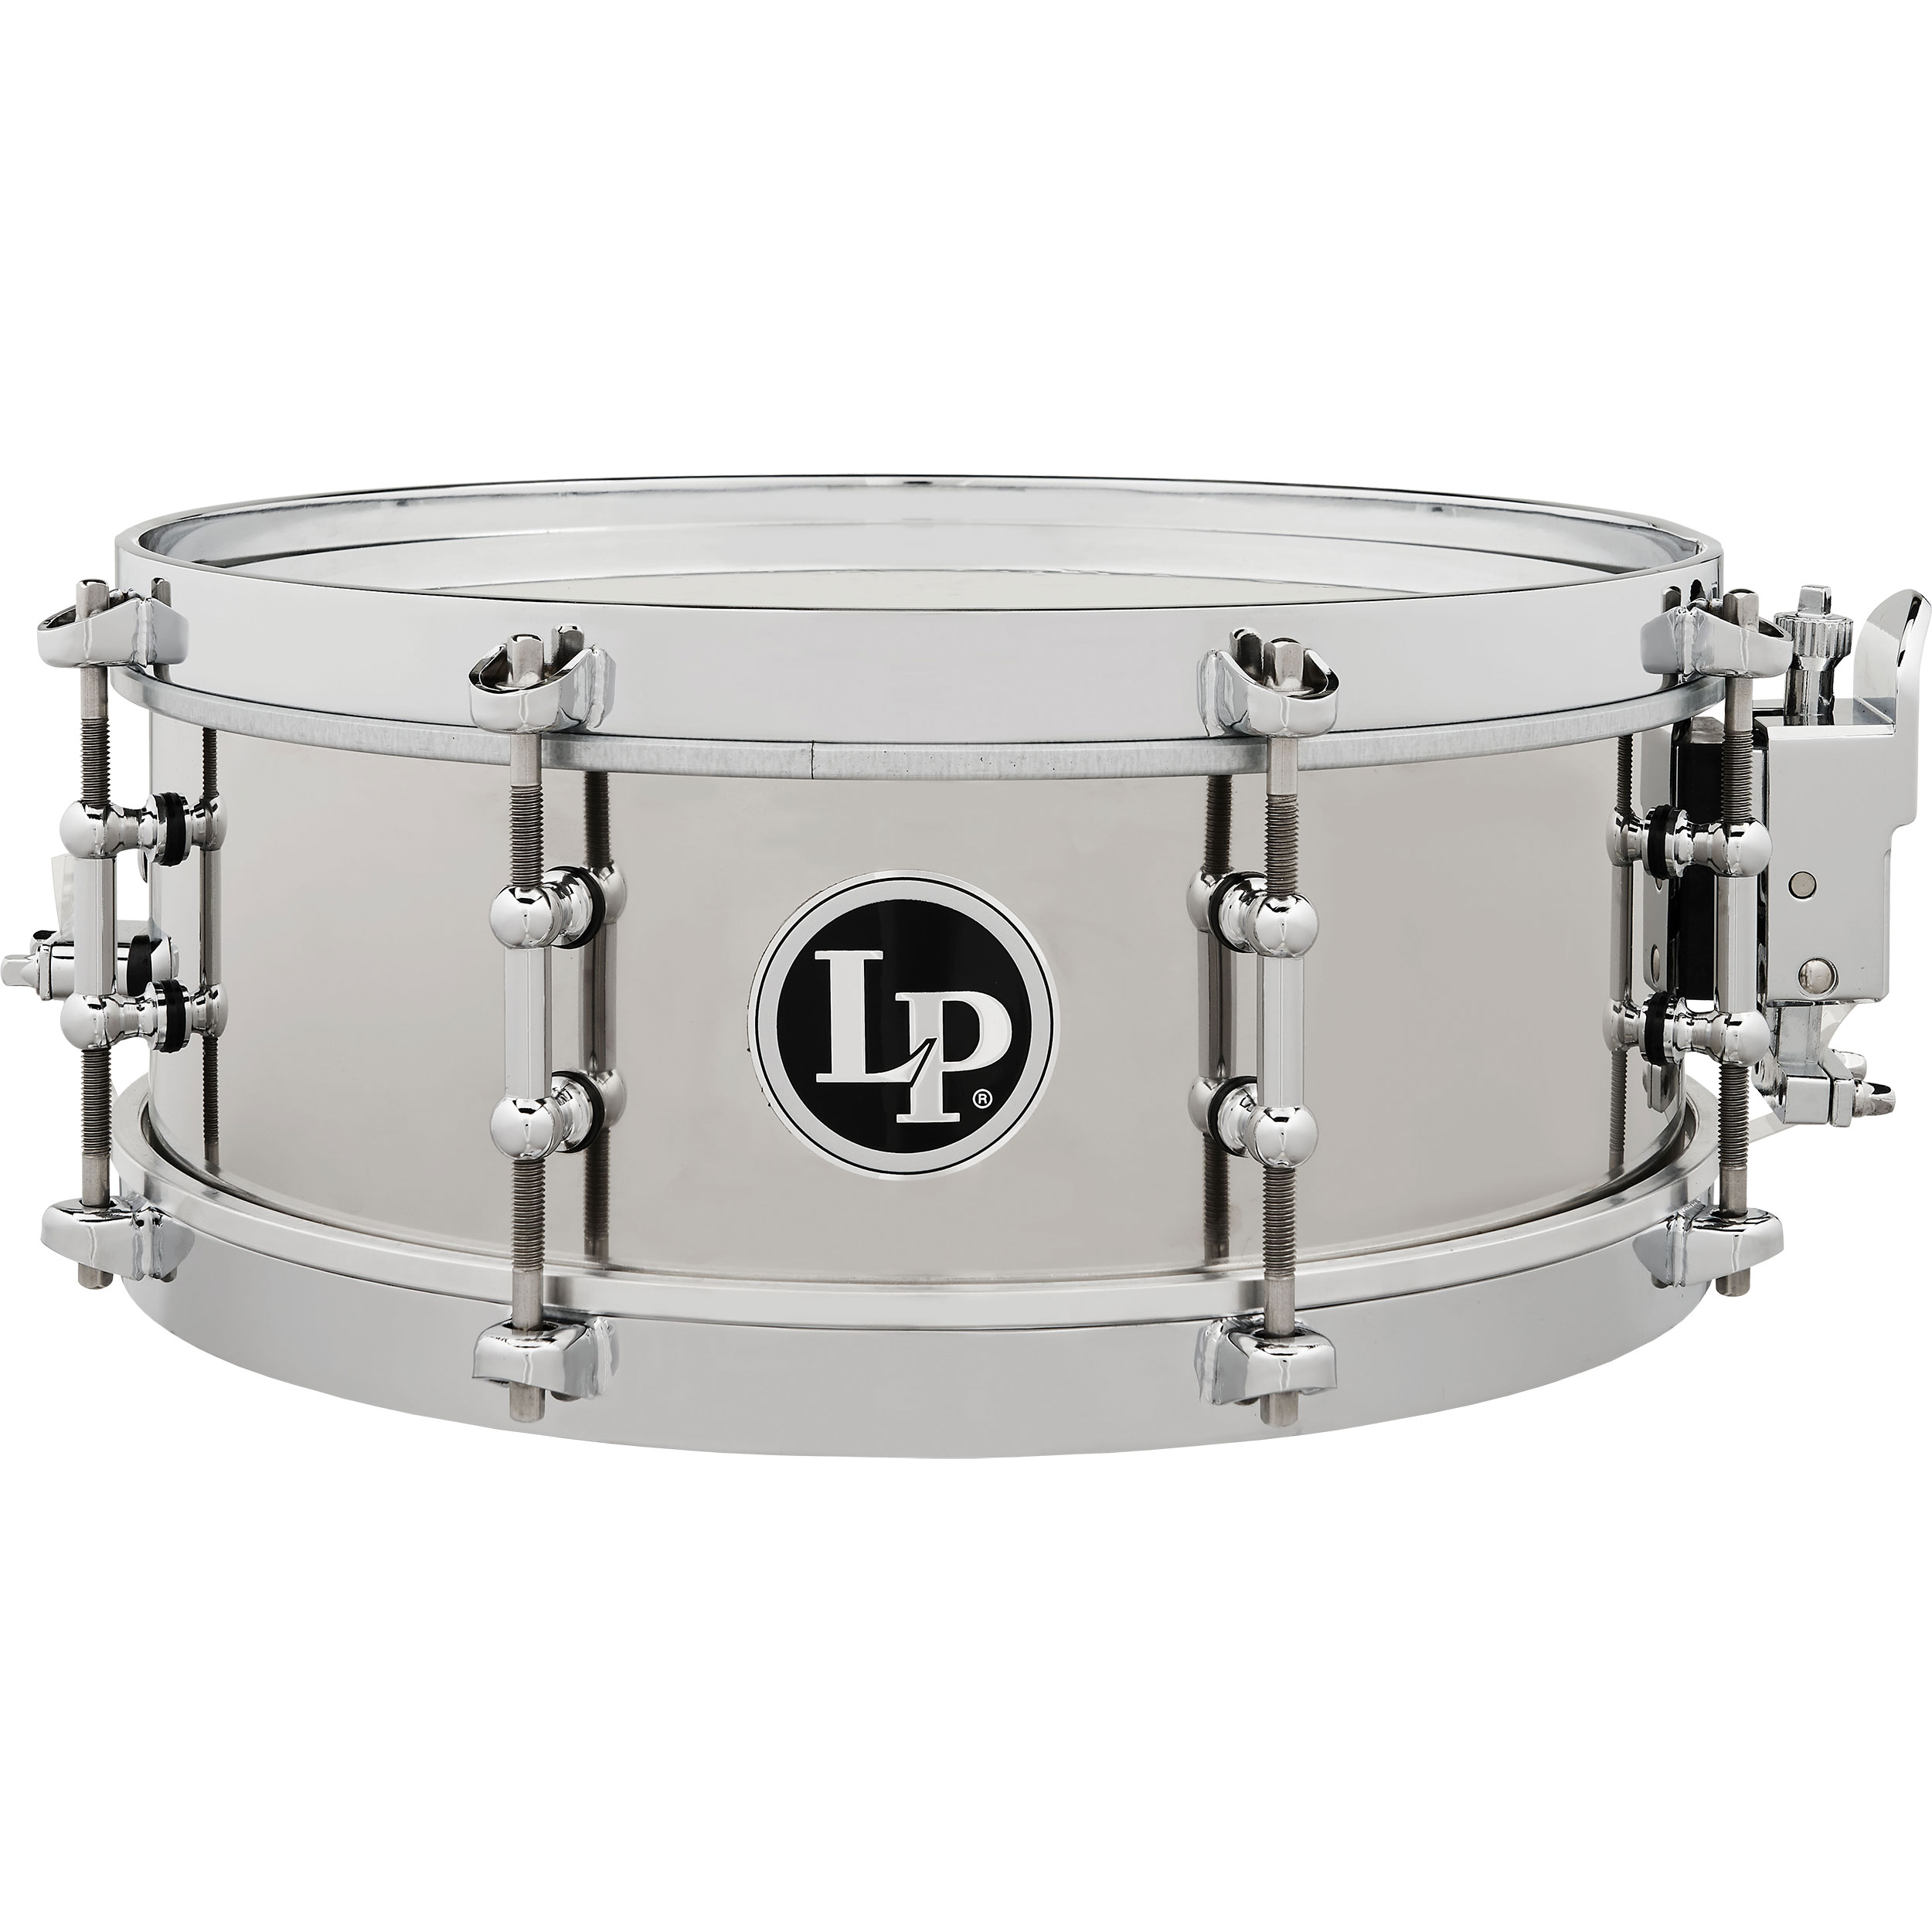 "LP 4.5"" x 12"" Stainless Steel Salsa Snare Drum"